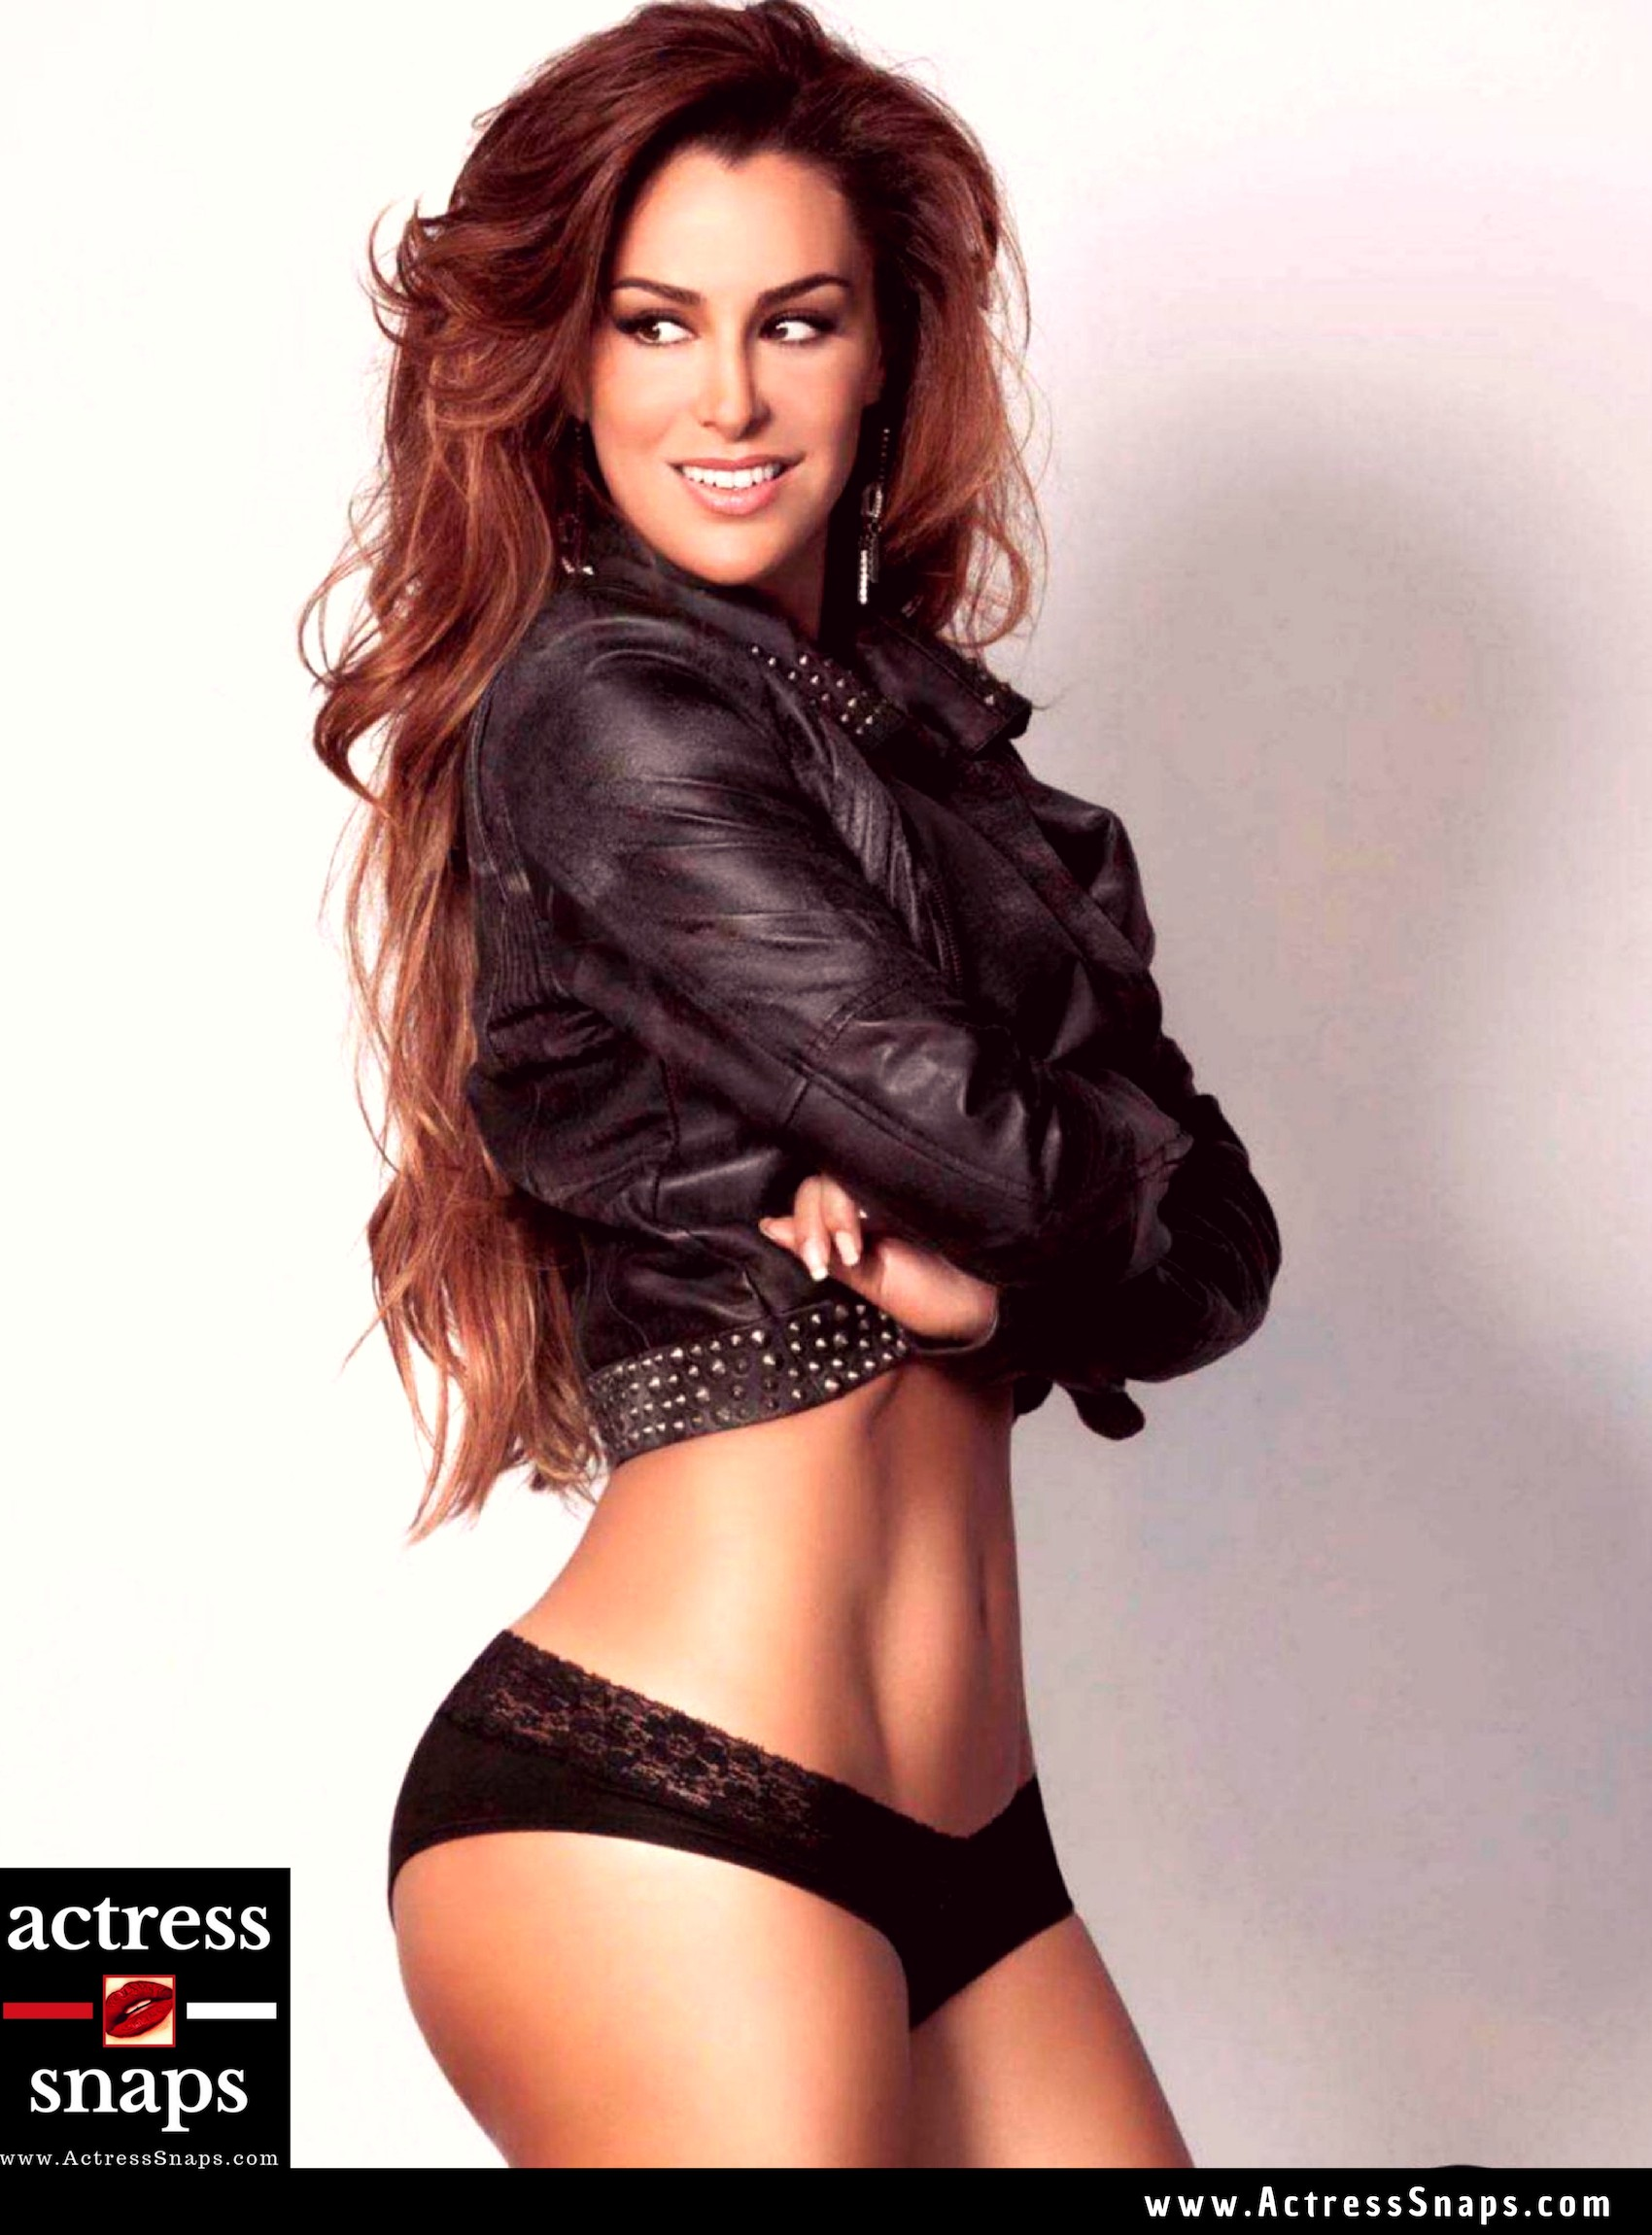 Ninel Conde - XTRA Magazine Photos - Sexy Actress Pictures | Hot Actress Pictures - ActressSnaps.com